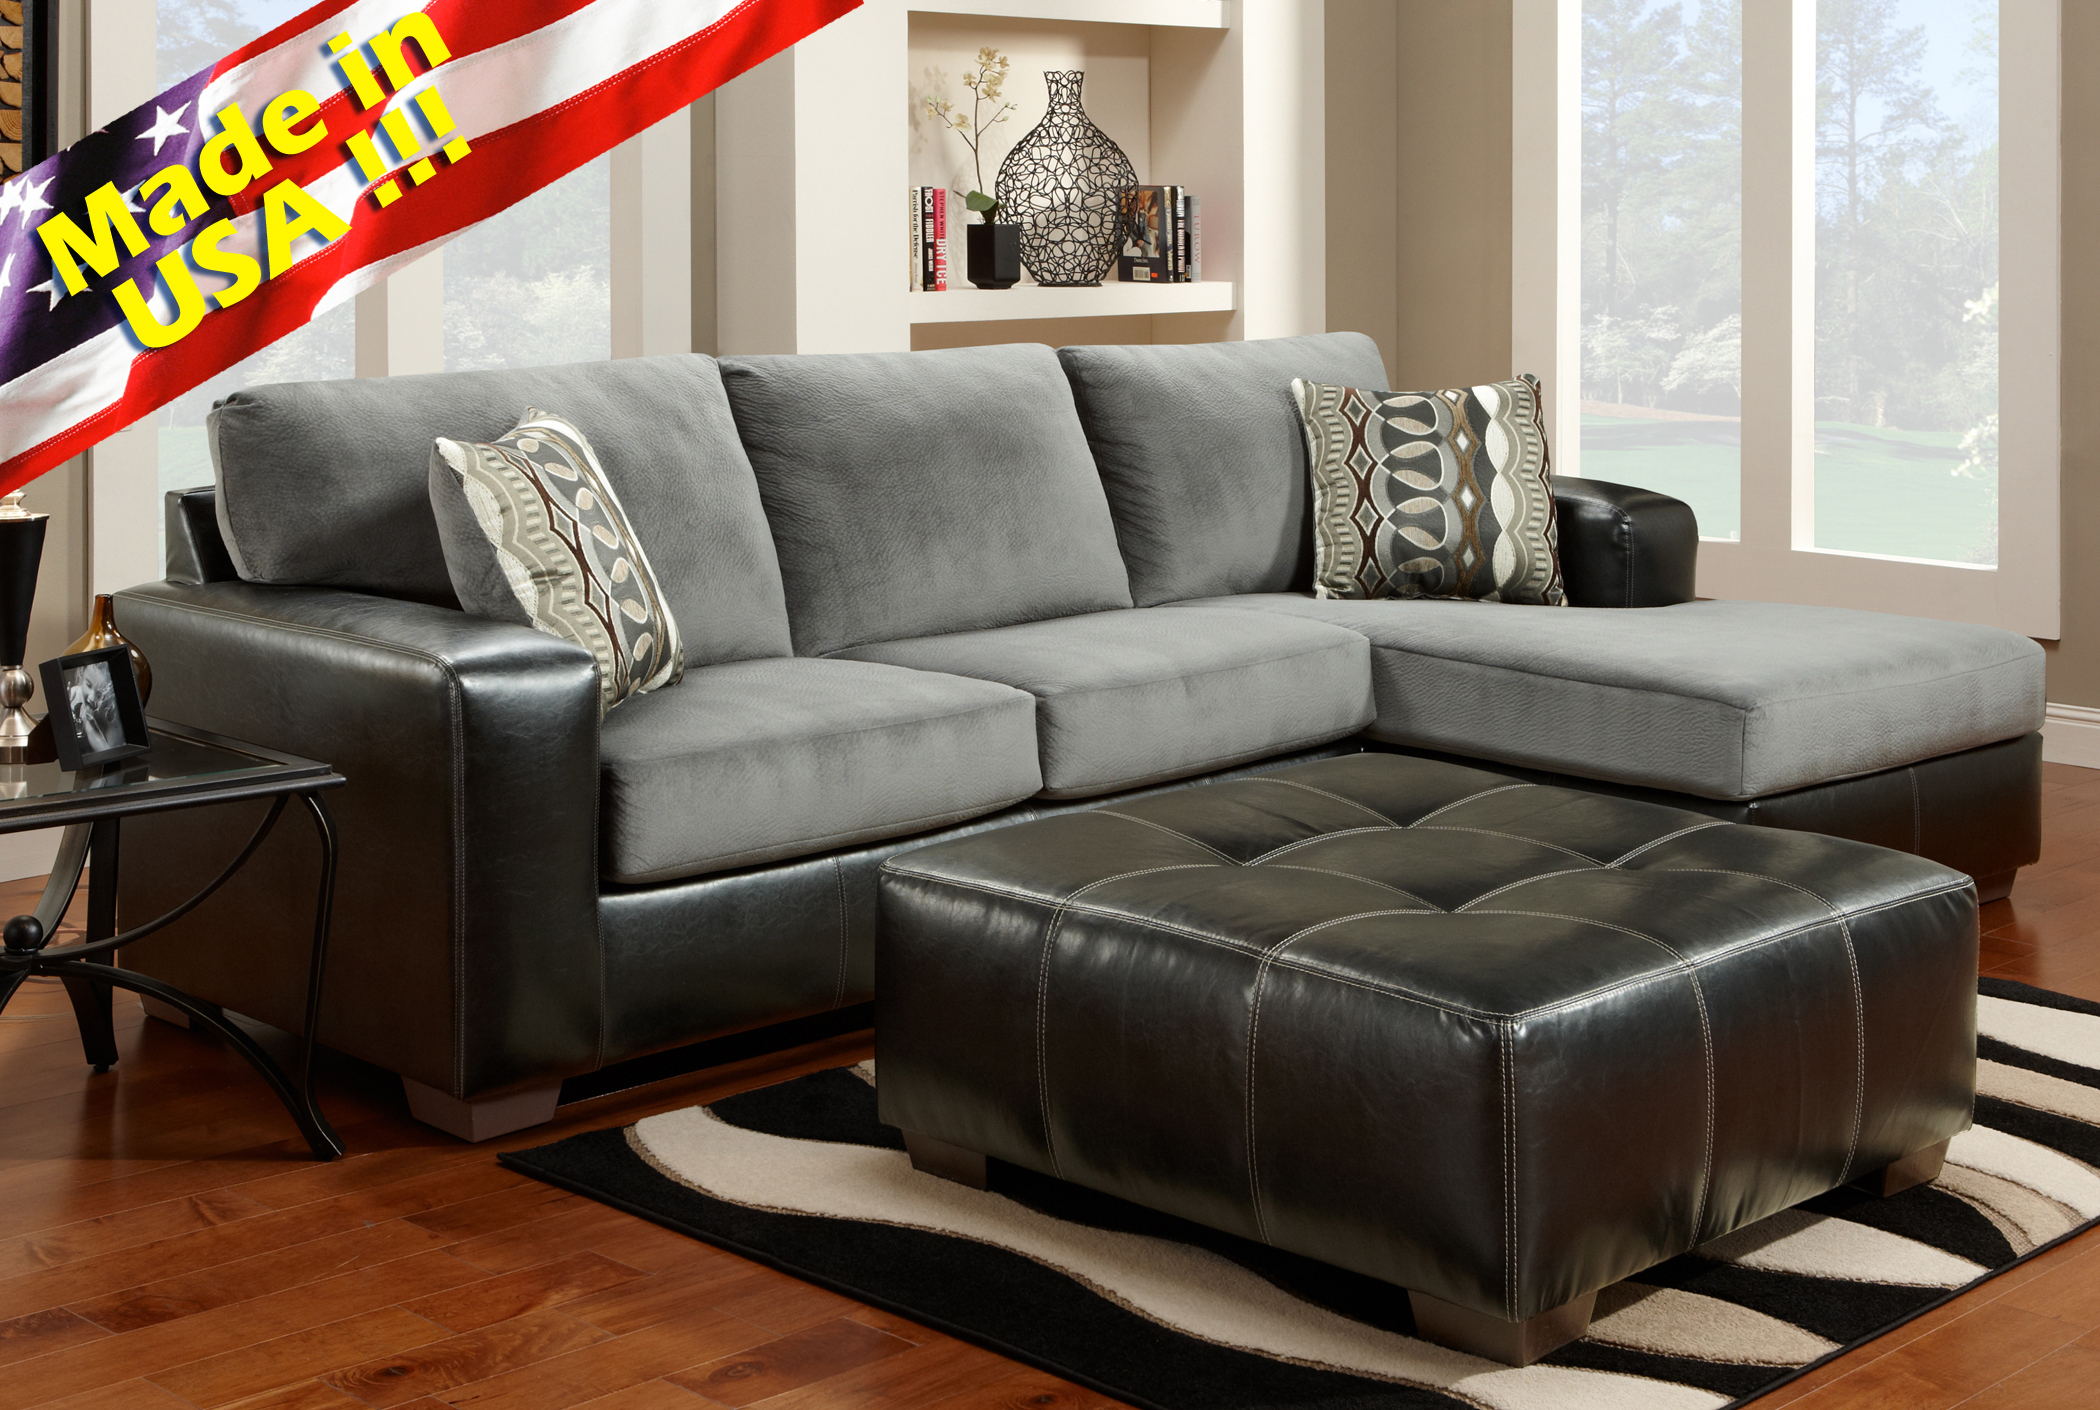 Cumulus Black Gray Two-toned Sectional Sofa Chaise Set Made In USA : two tone microfiber sectional - Sectionals, Sofas & Couches